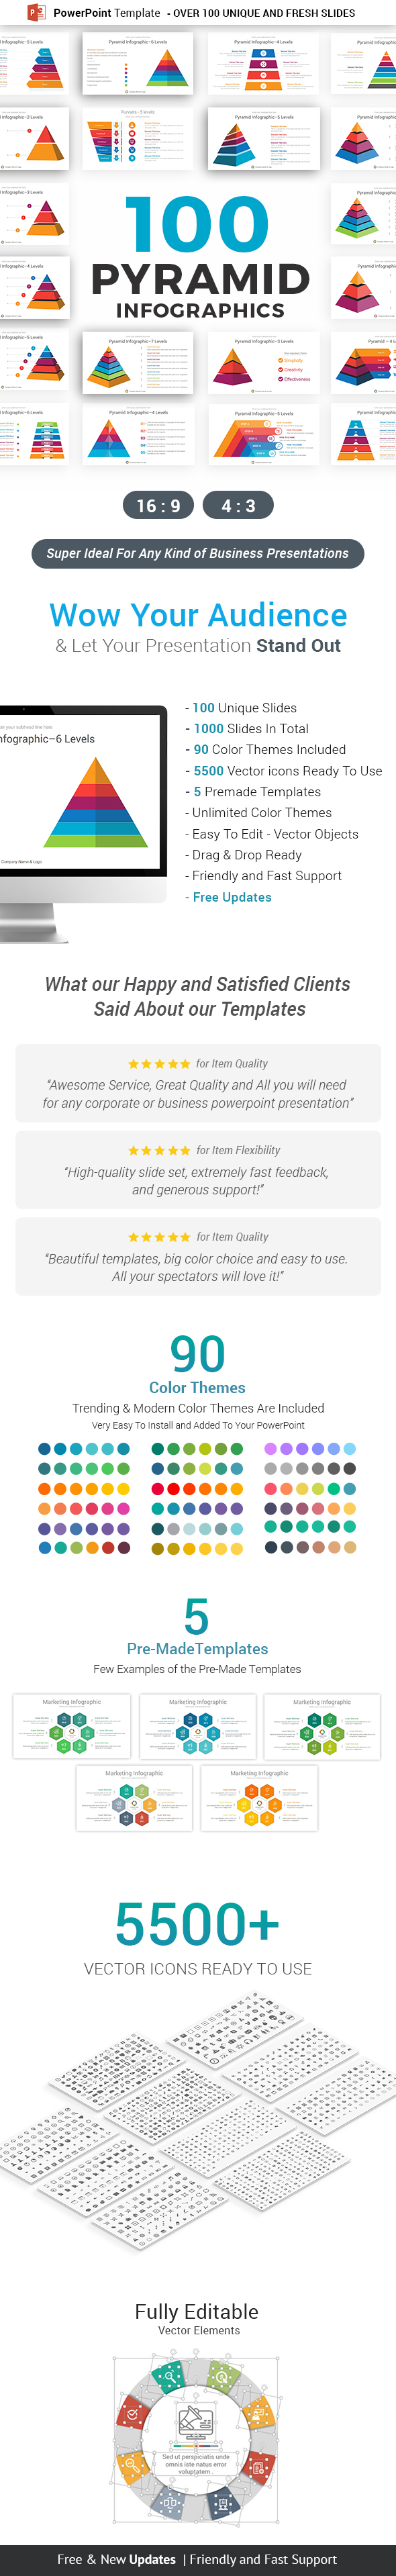 Pyramid Infographics PowerPoint Template diagrams